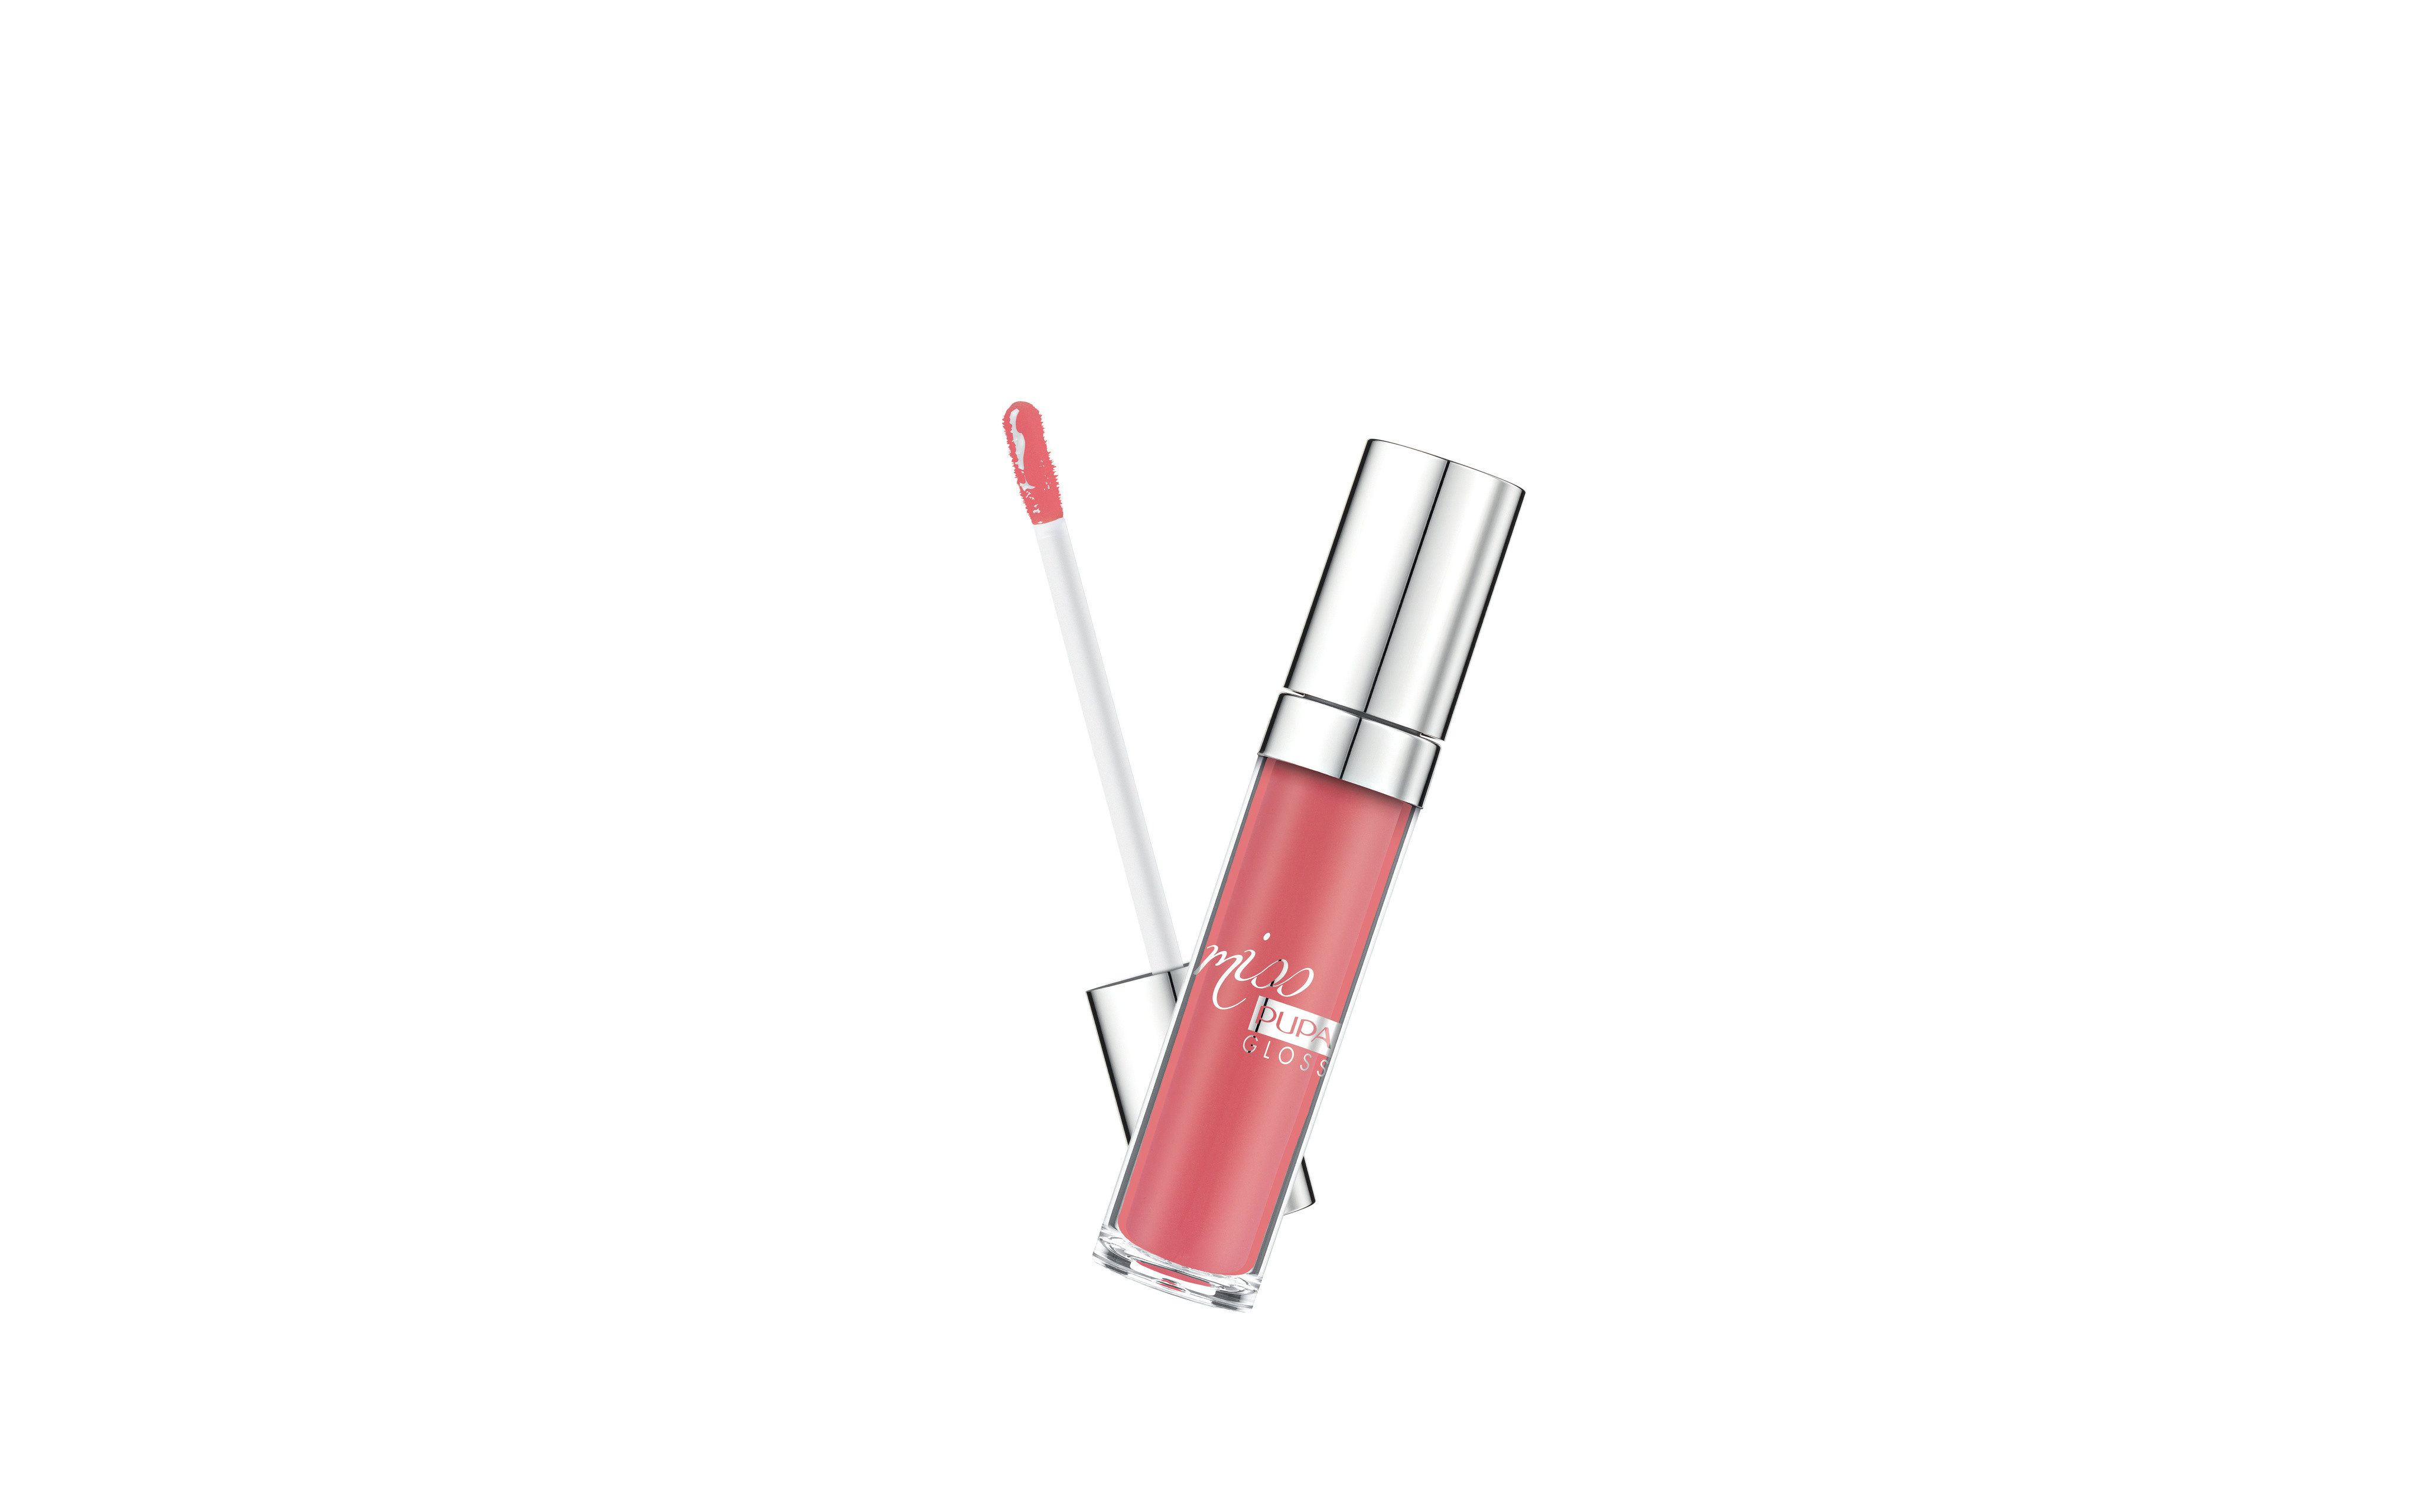 Pupa miss pupa gloss - 302, 302INGENIOUS PINK, large image number 0